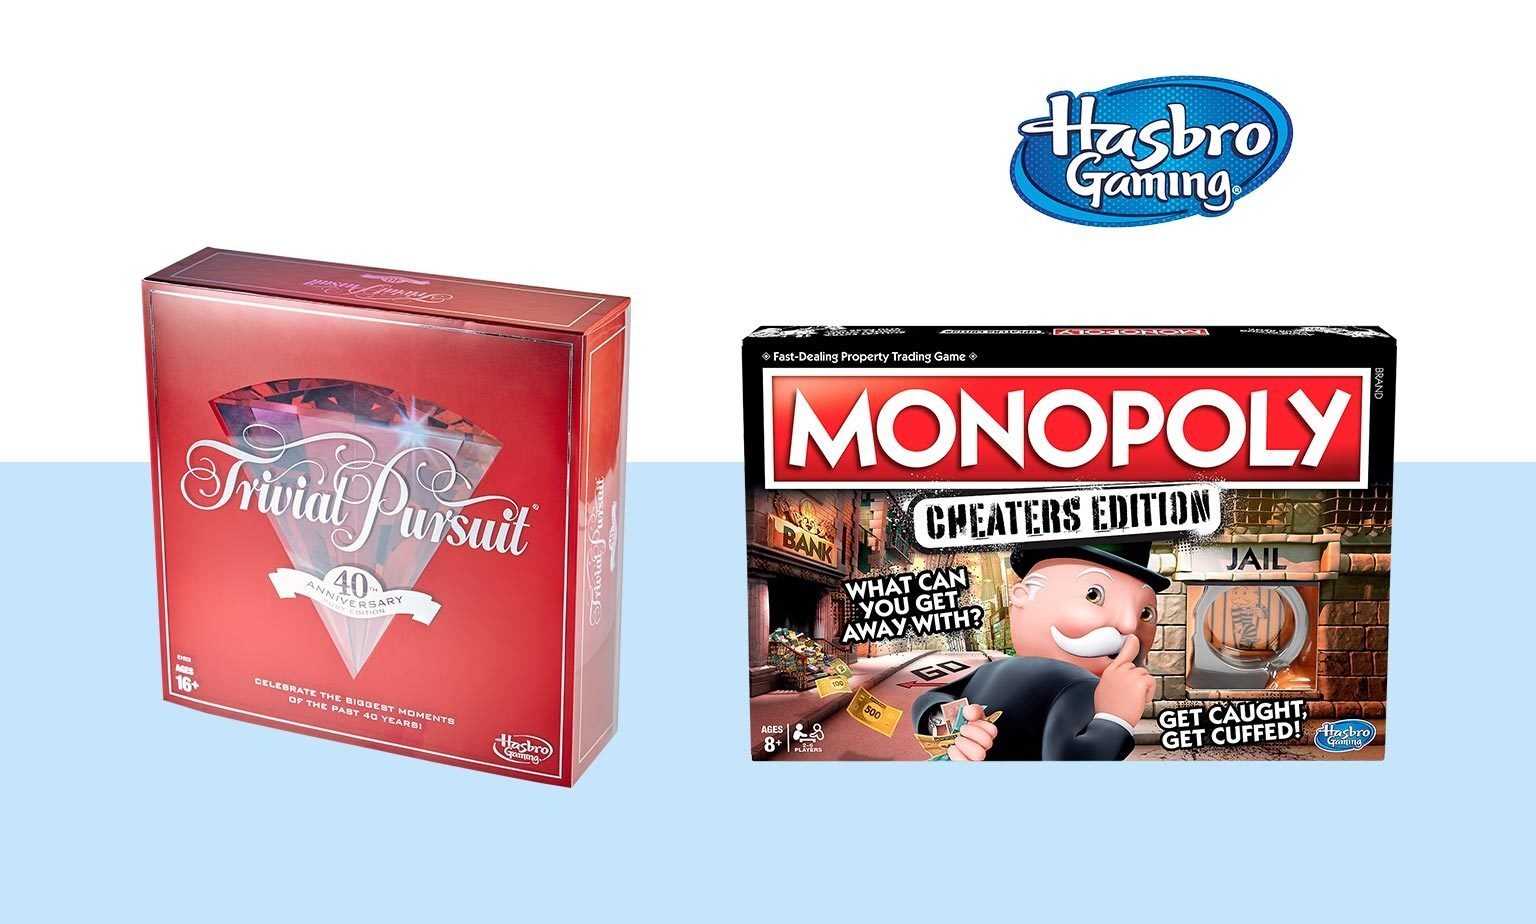 Up to 20% off Hasbro Gaming